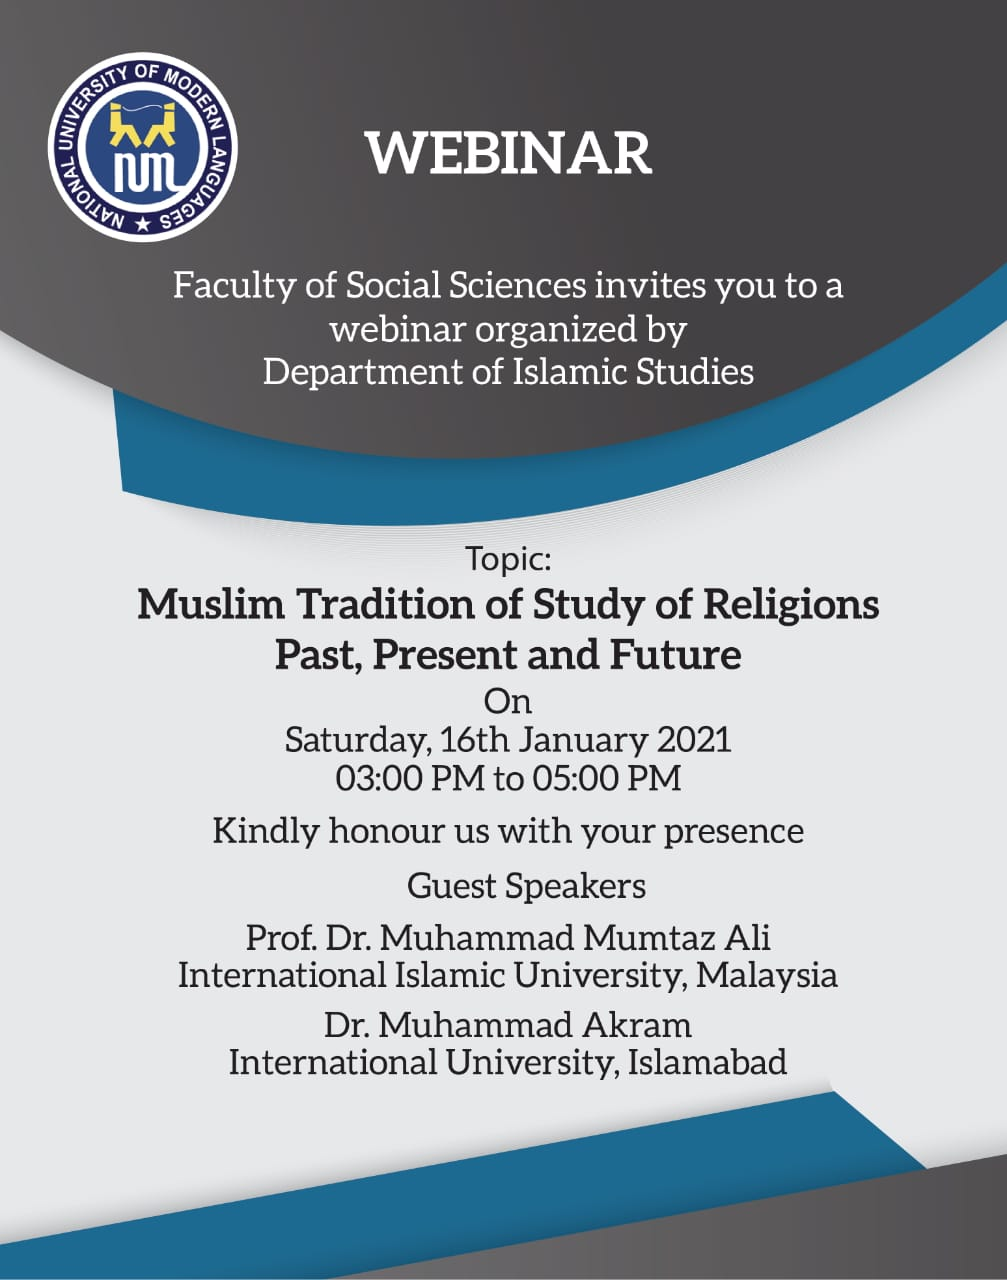 Muslim Tradition of the Study of Religion: Past, Present and Future